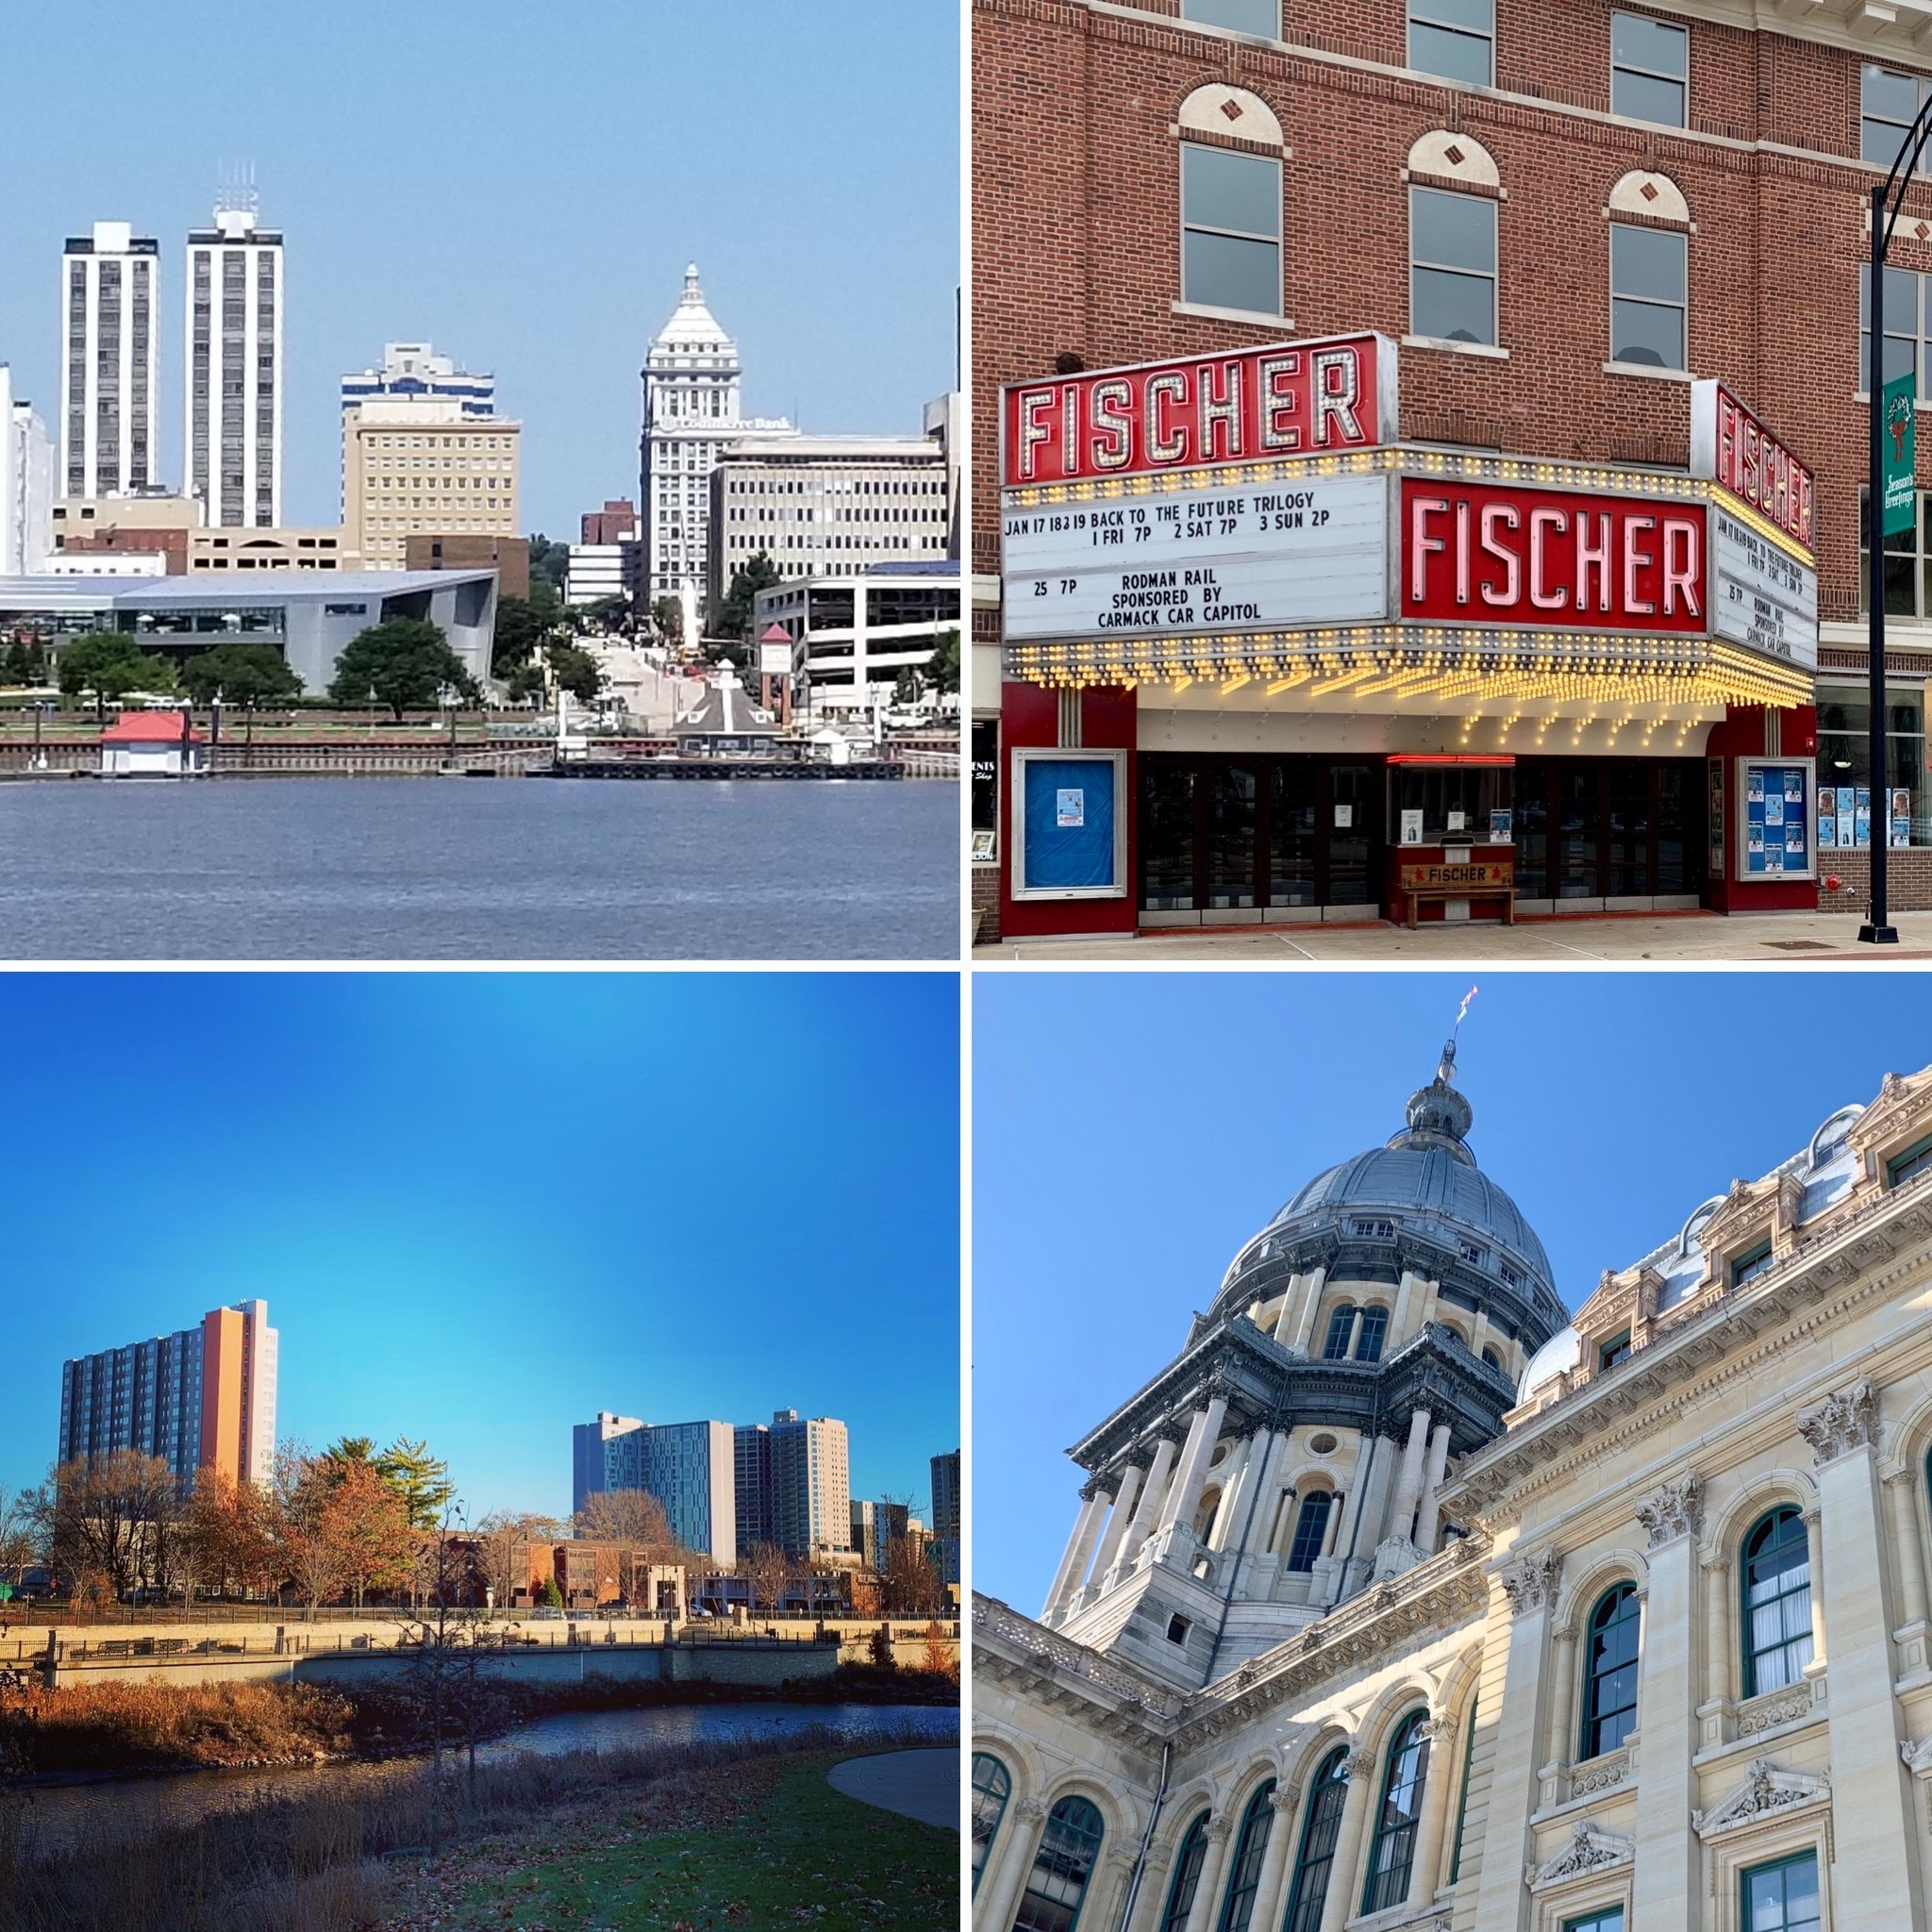 Upper left square: Peoria, upper right square: Danville, lower left square: Champaign, lower right square: State Capitol in Springfield